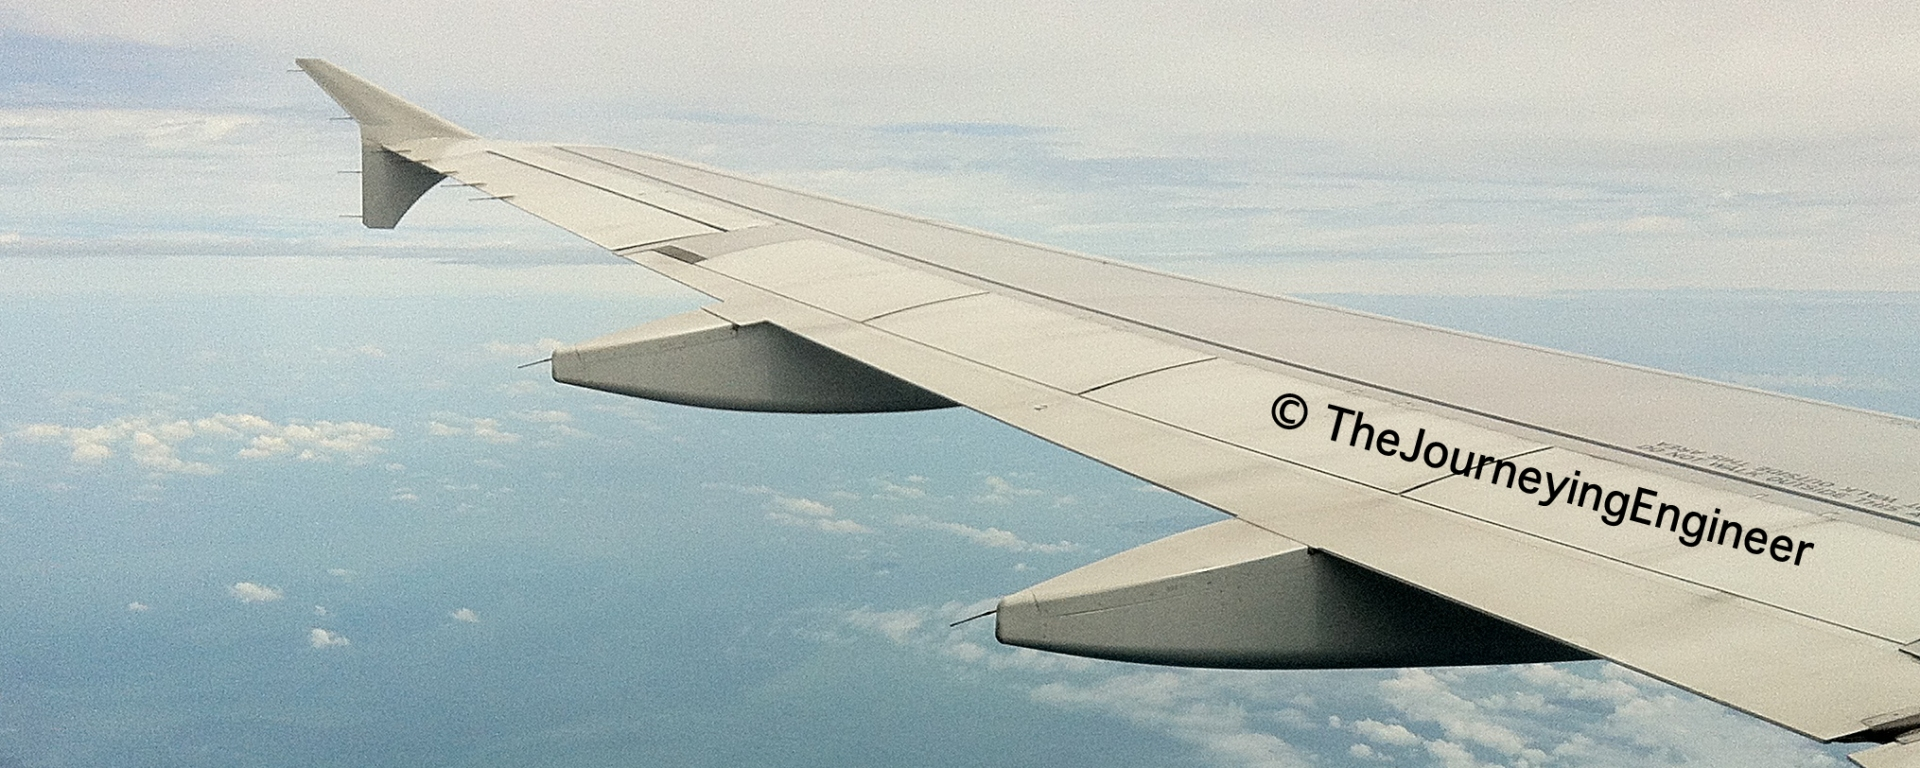 A plane's wing